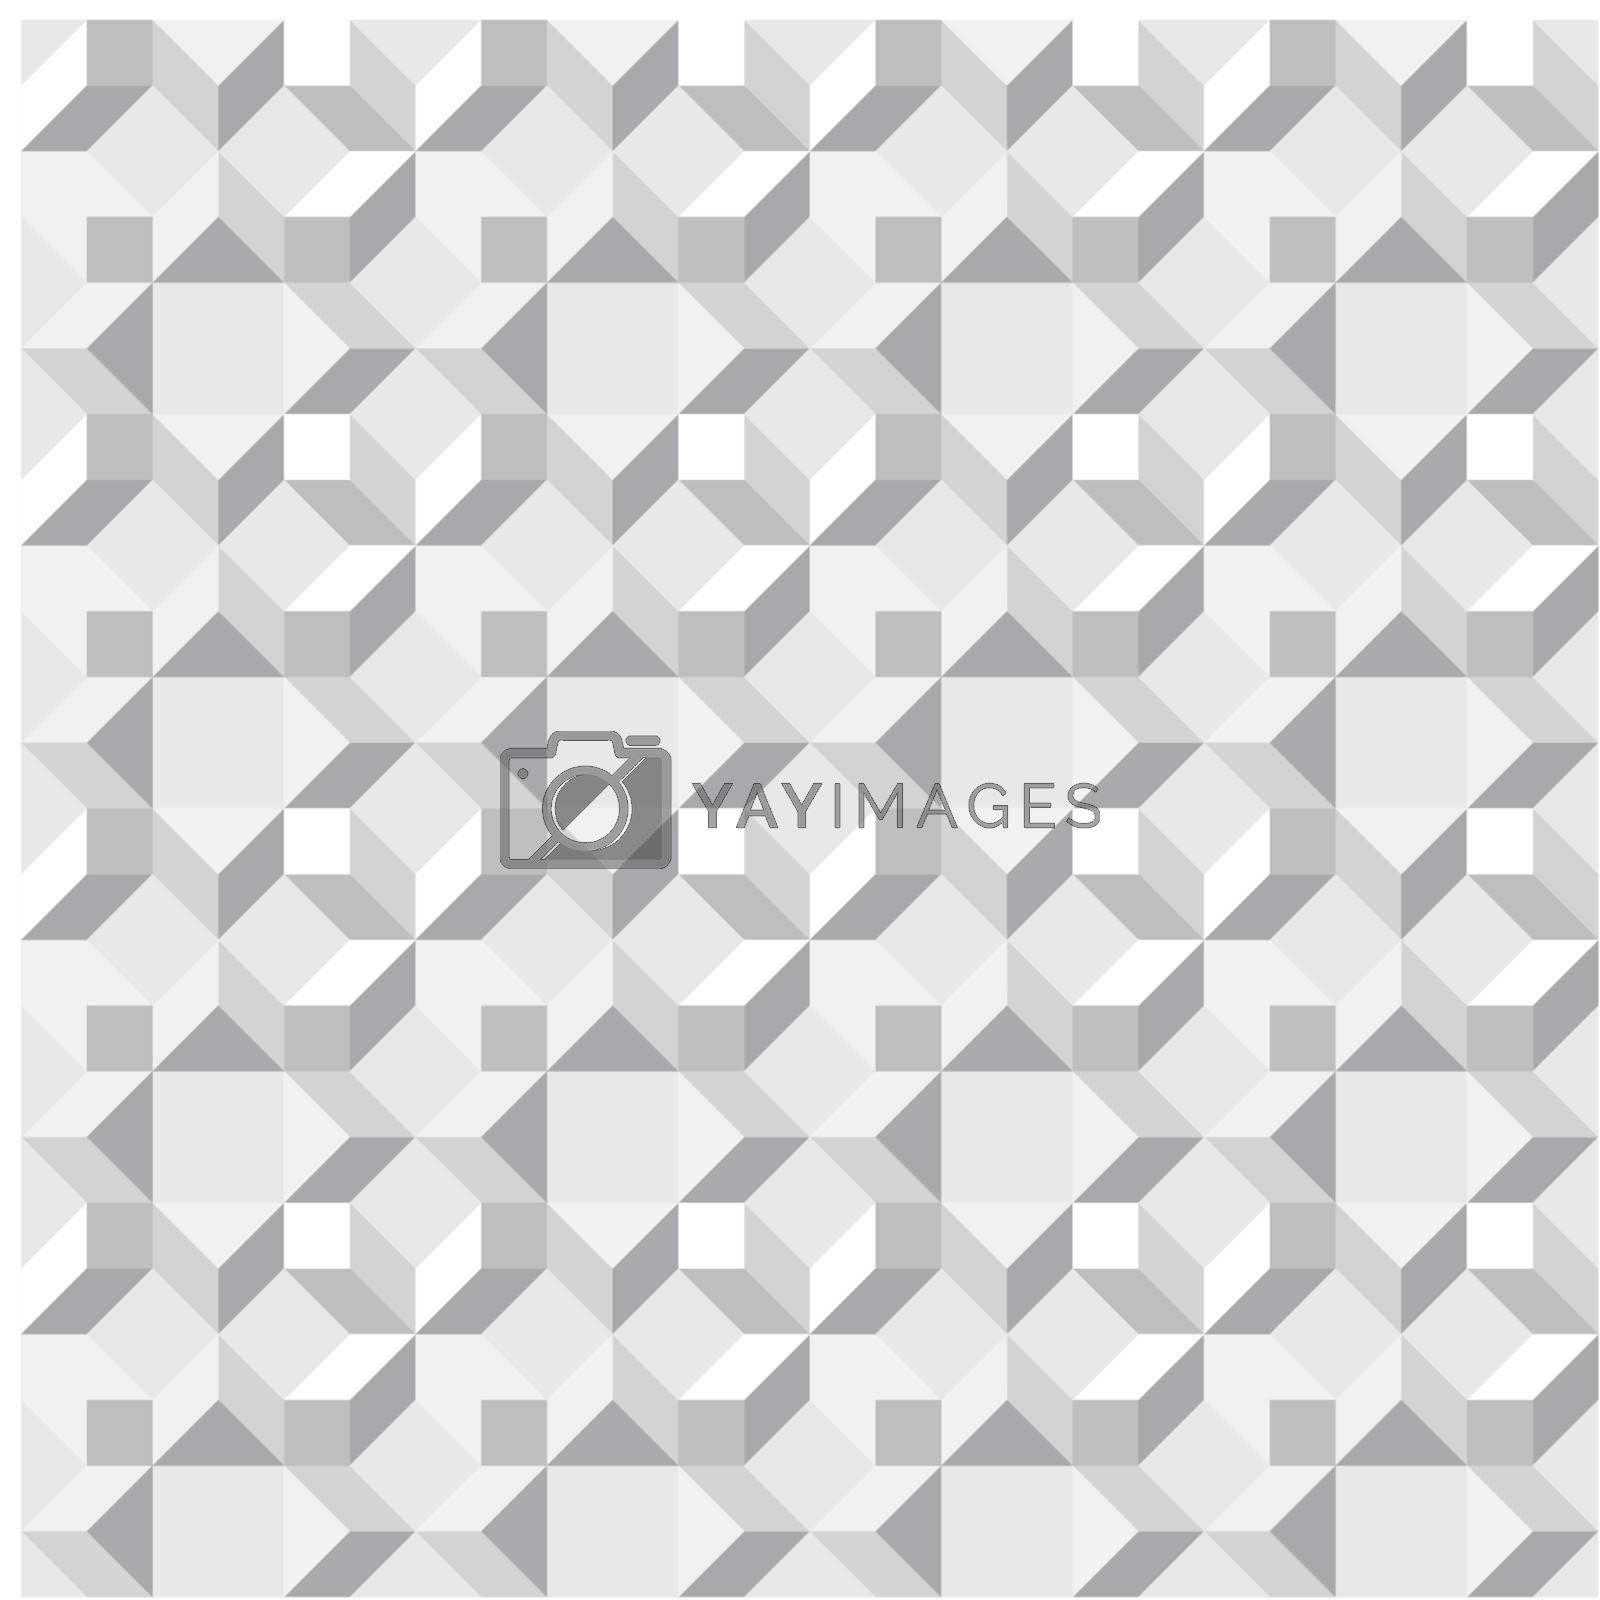 Seamless texture - simple vector monochrome abstract pattern